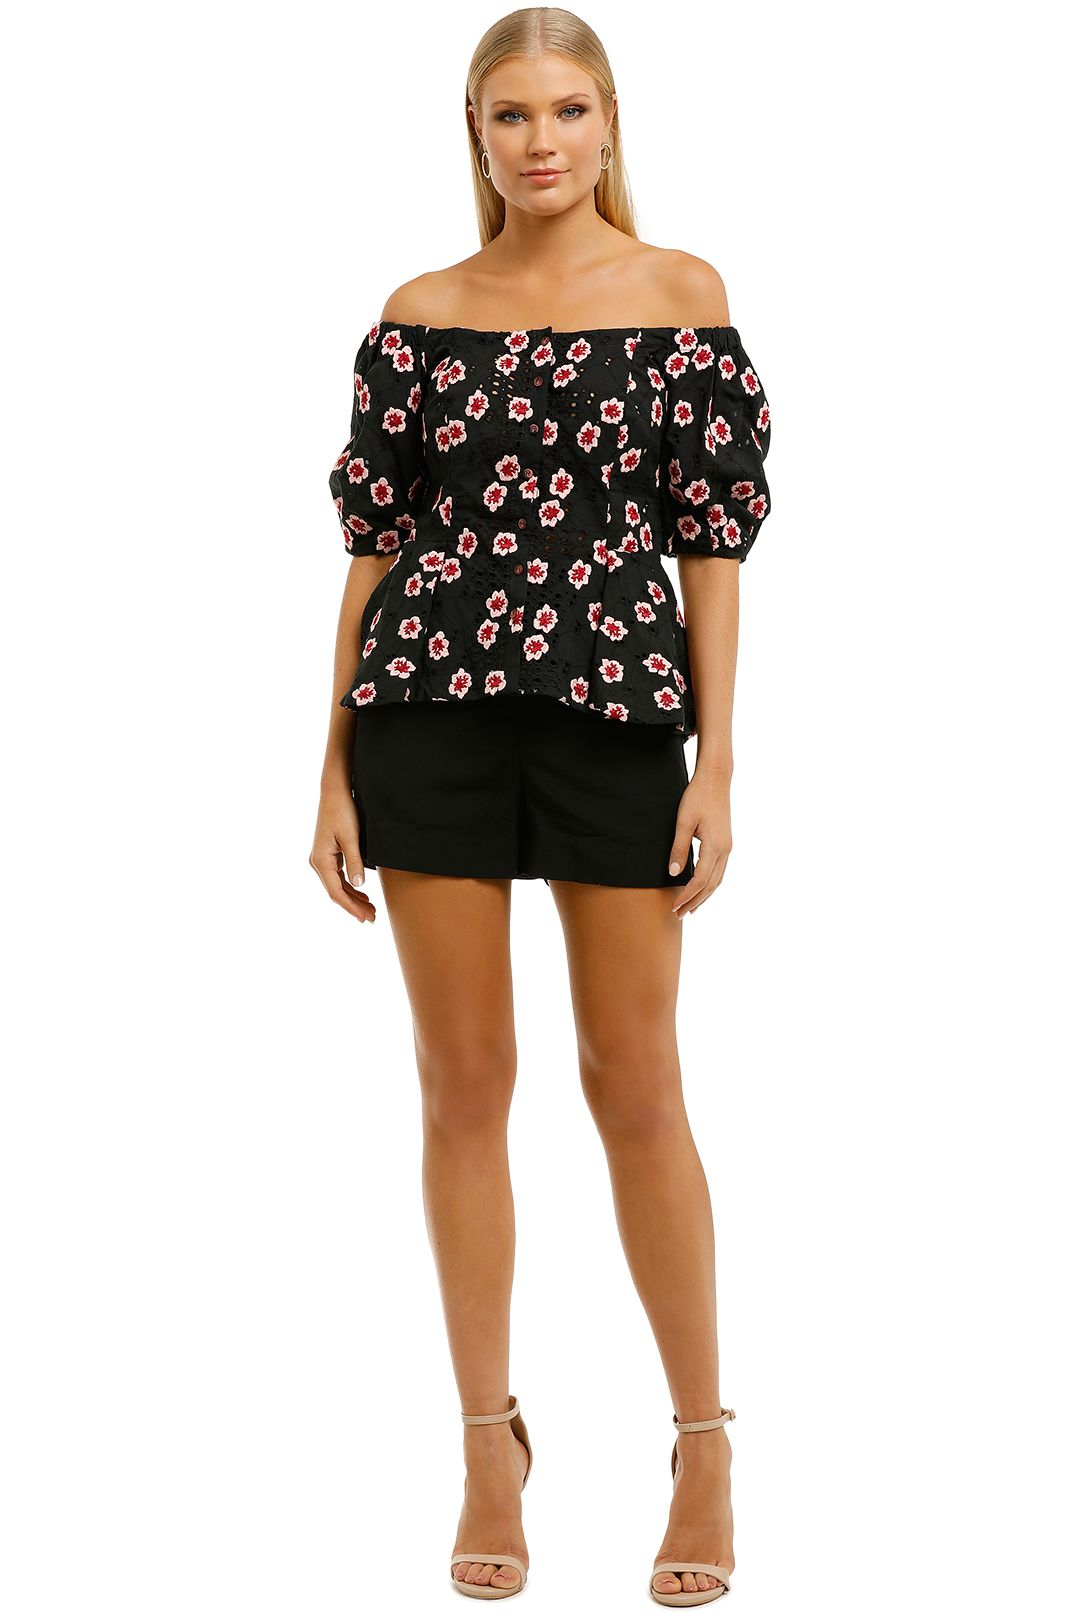 Moss-and-Spy-Rosita-Top-Multi-Front